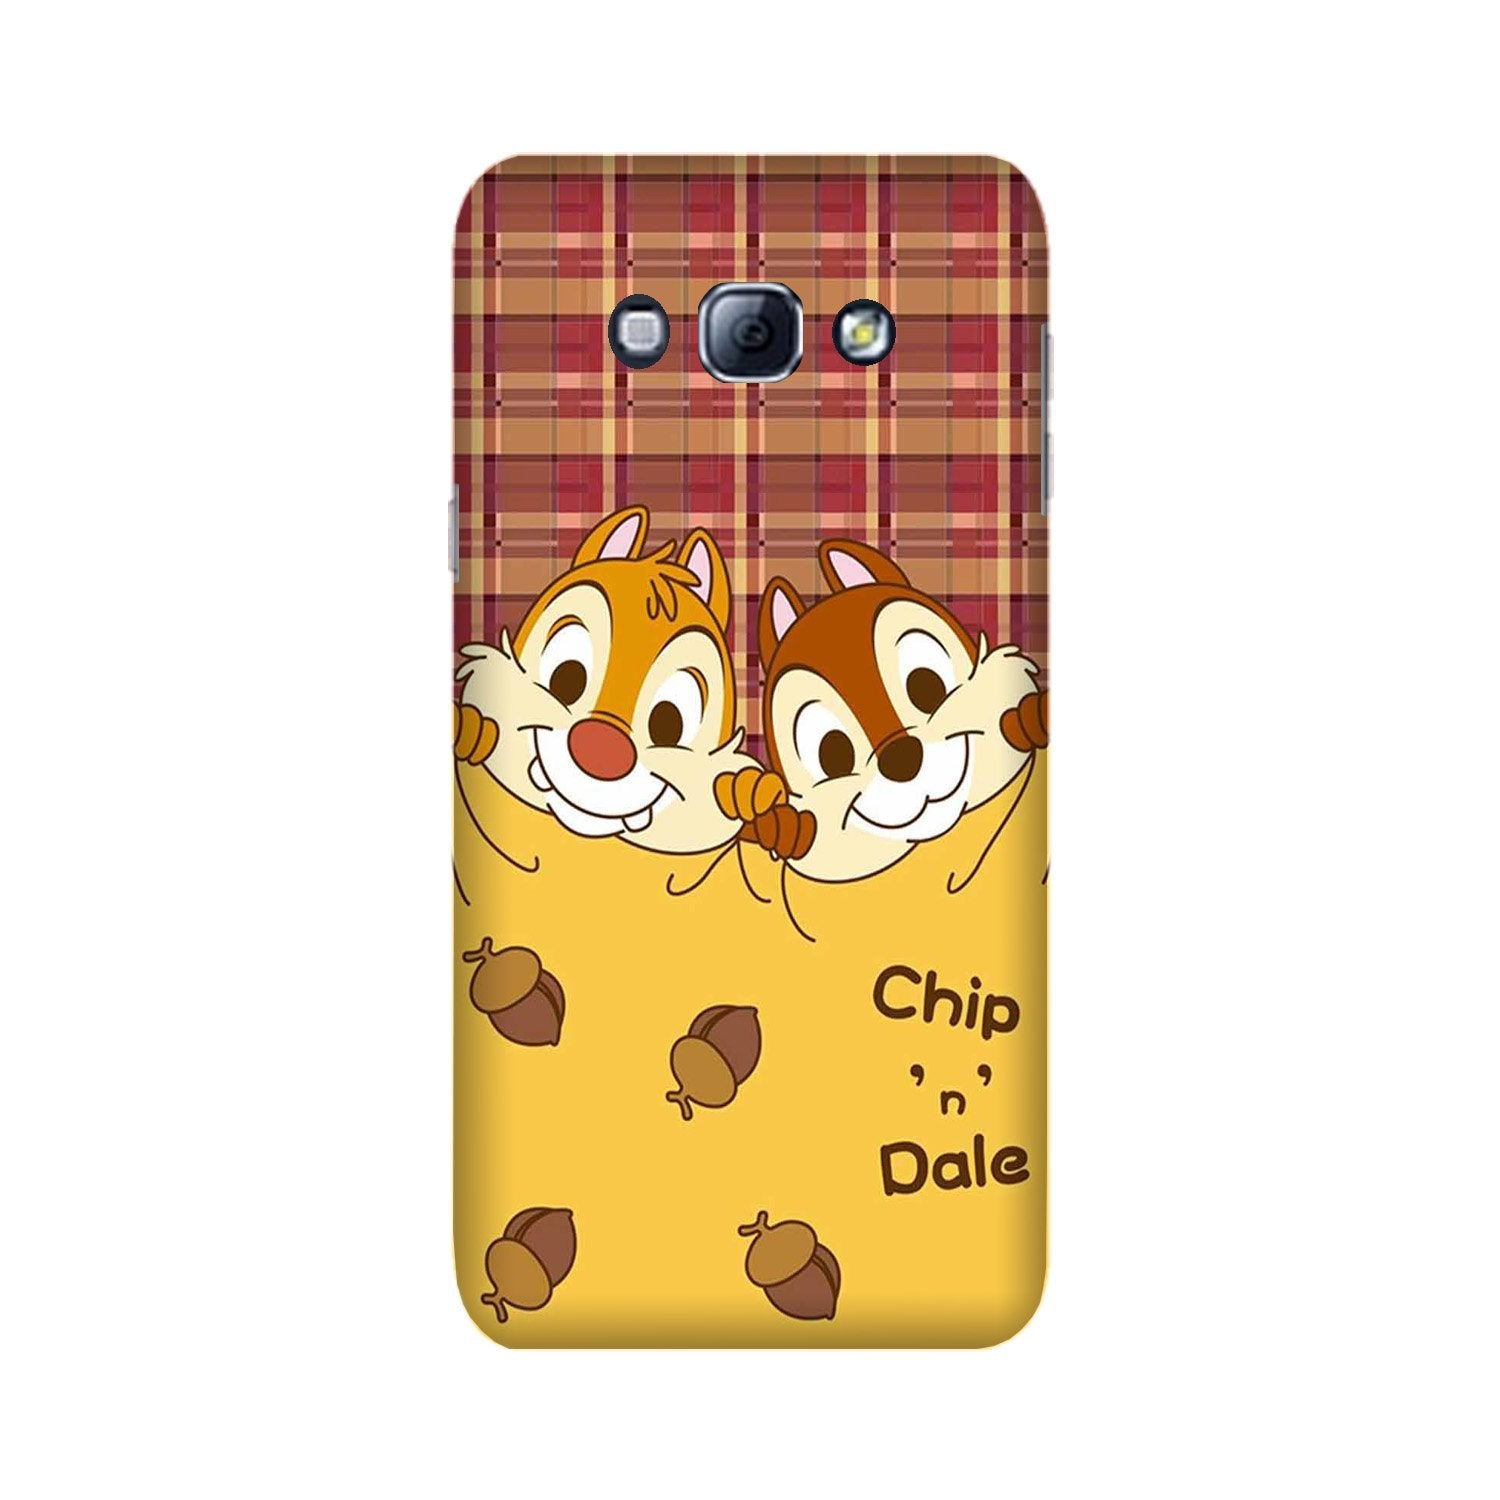 Chip n Dale Mobile Back Case for Galaxy A8 (2015)  (Design - 342)